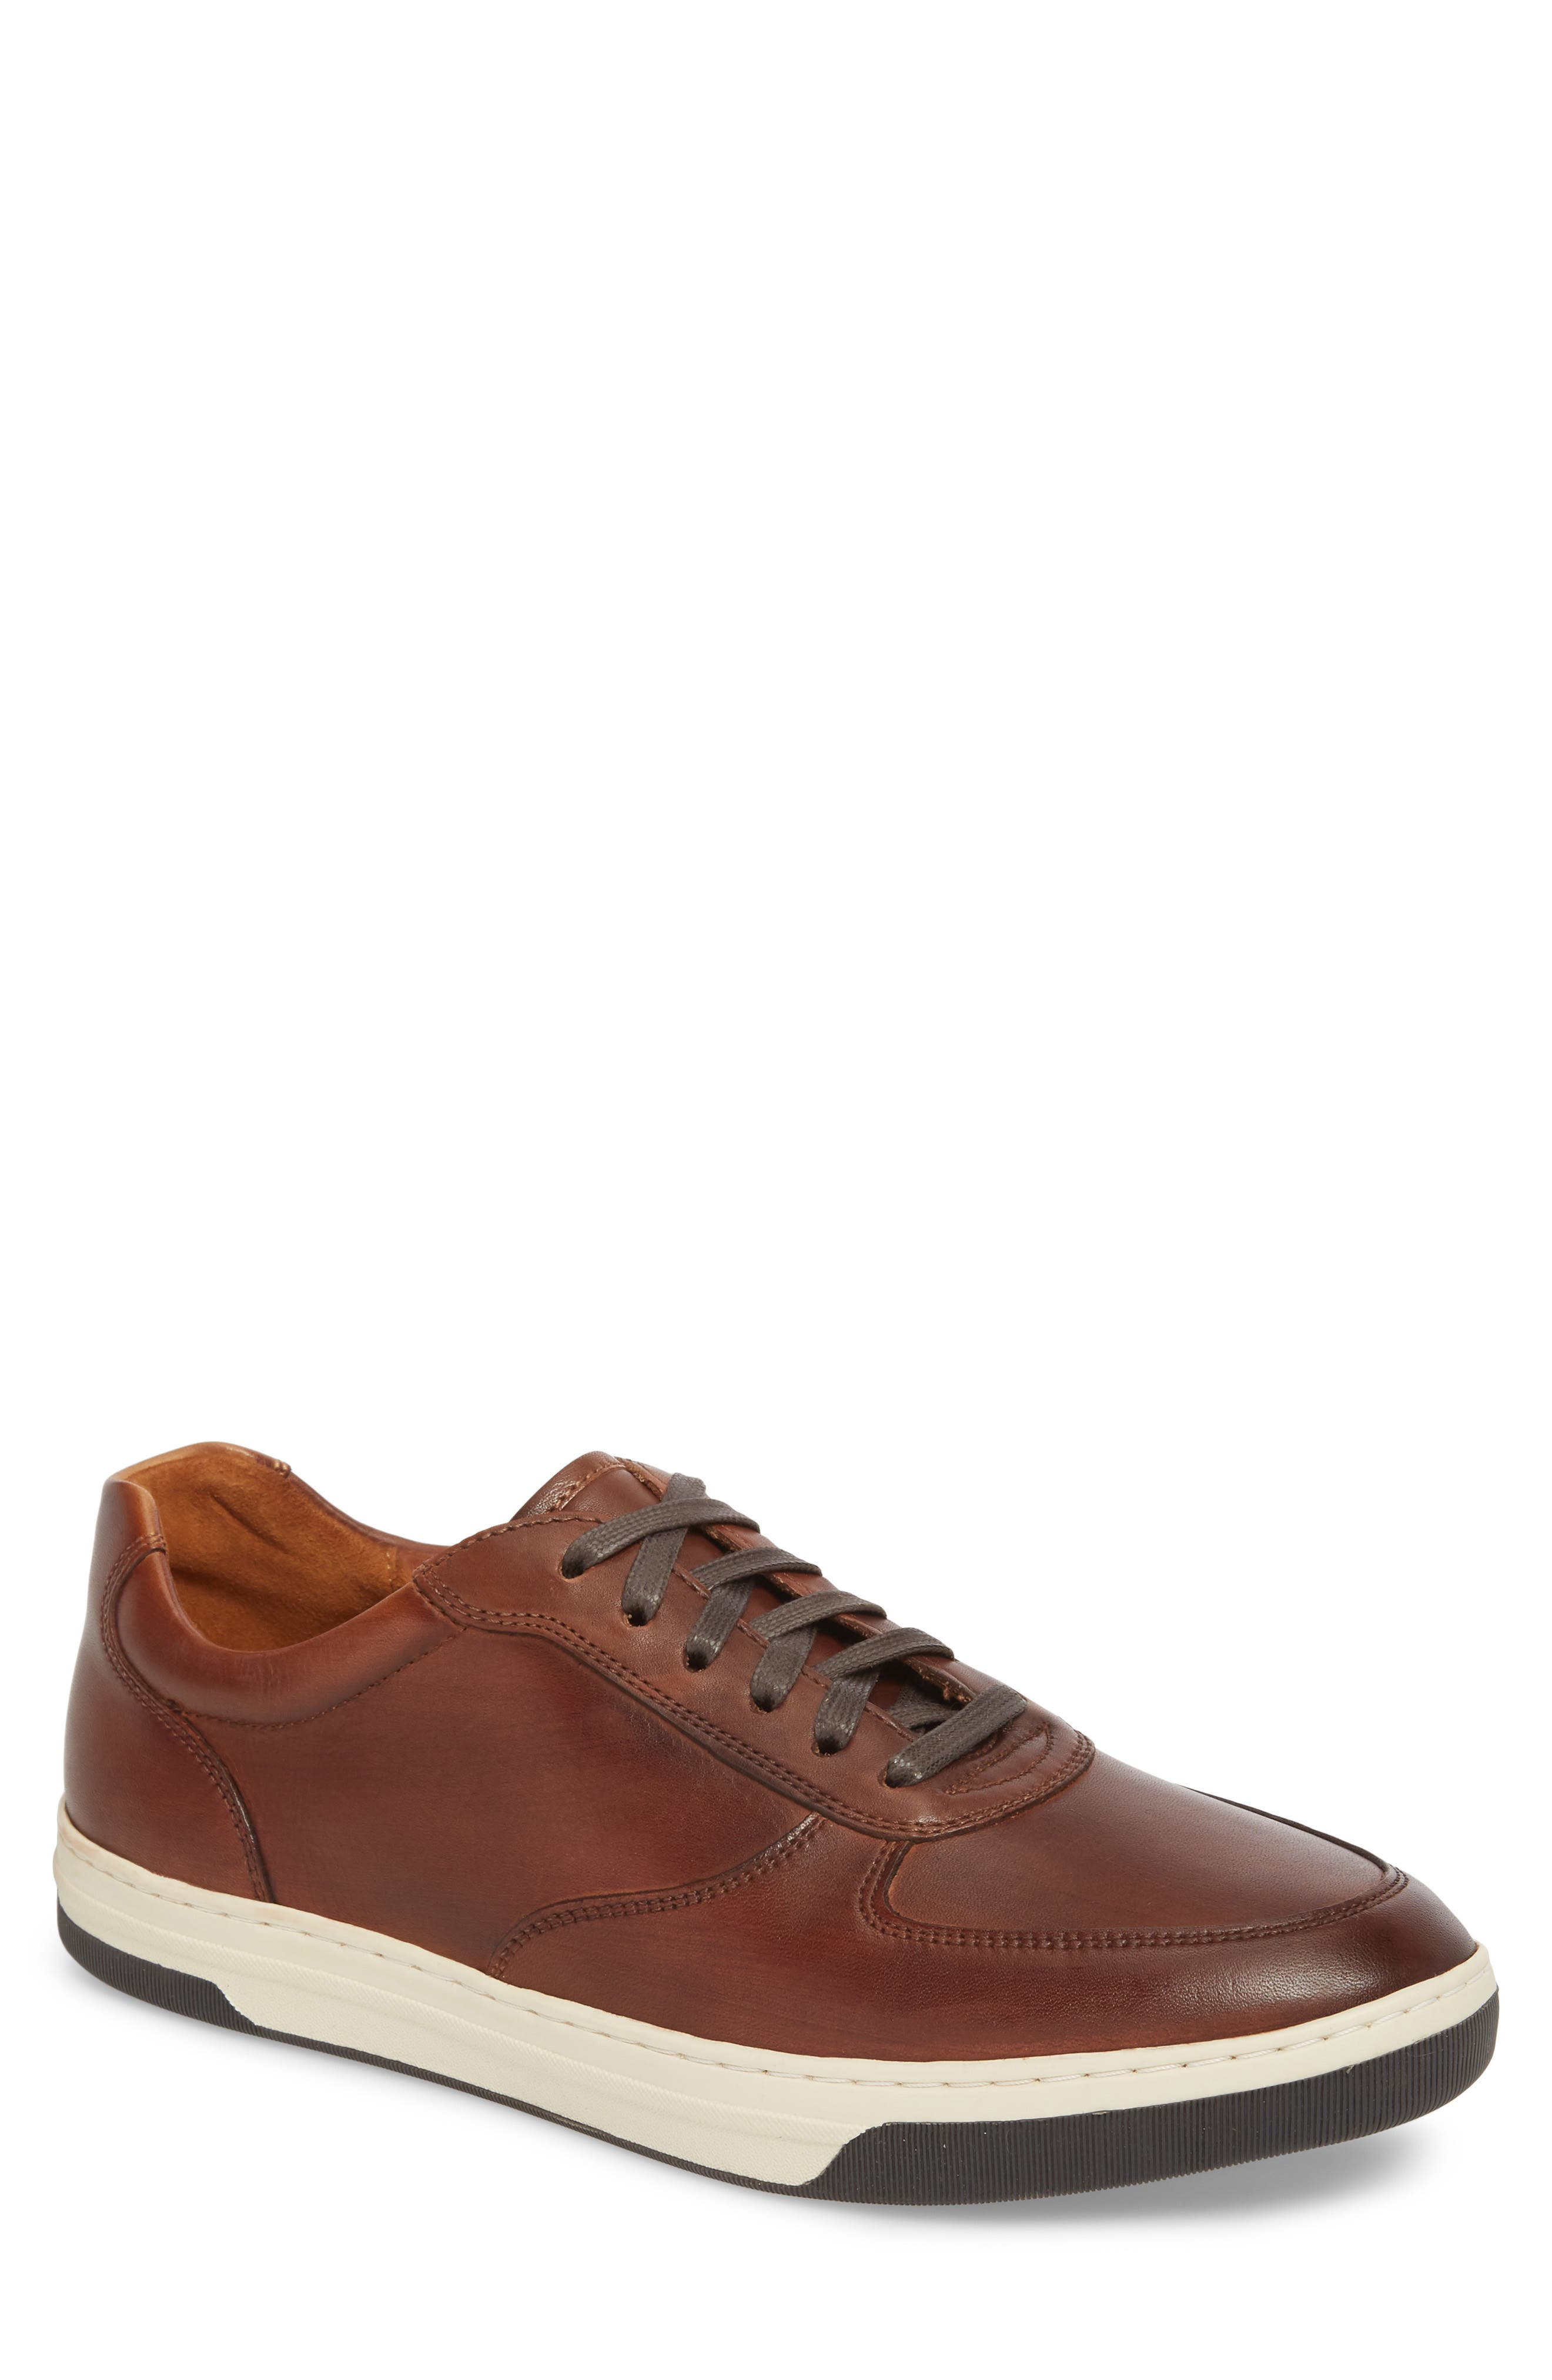 Alternate Image 1 Selected - Johnston & Murphy Fenton Low Top Sneaker (Men)